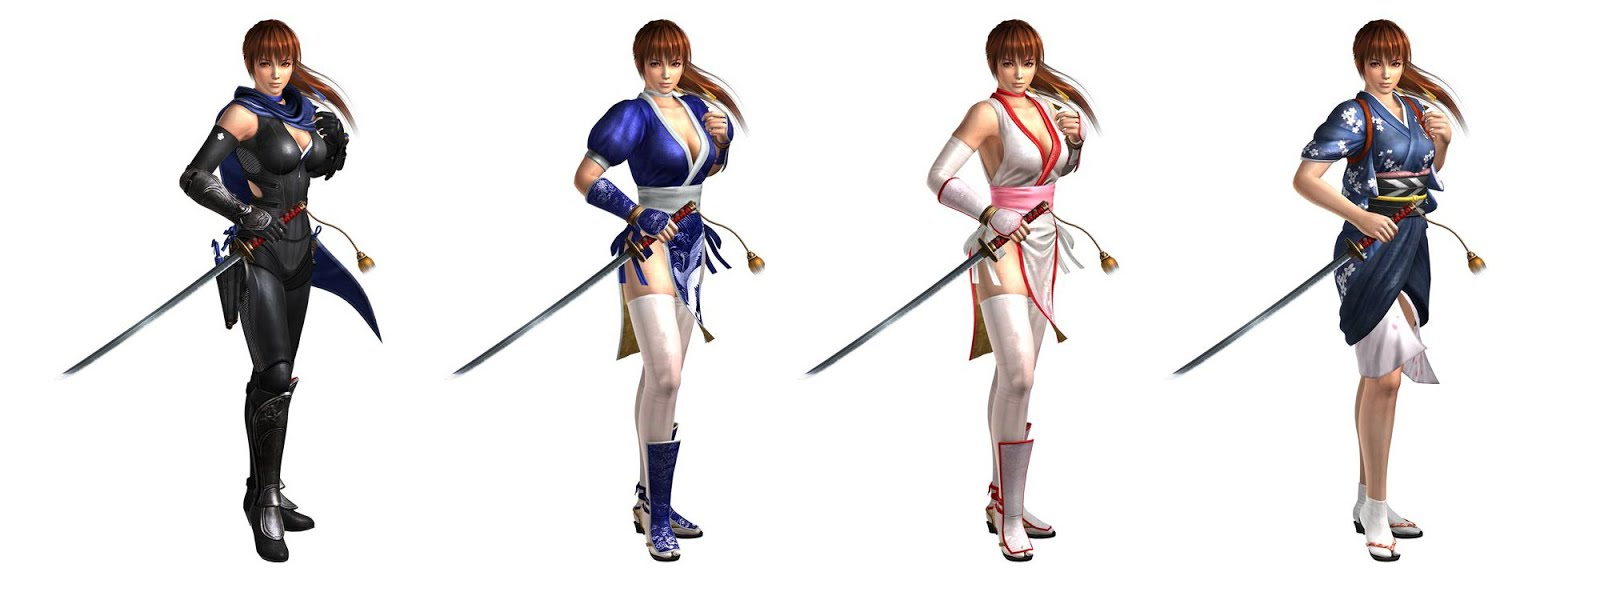 Rpg Games Free Online Rpg Game Best Role Playing Games Kasumi